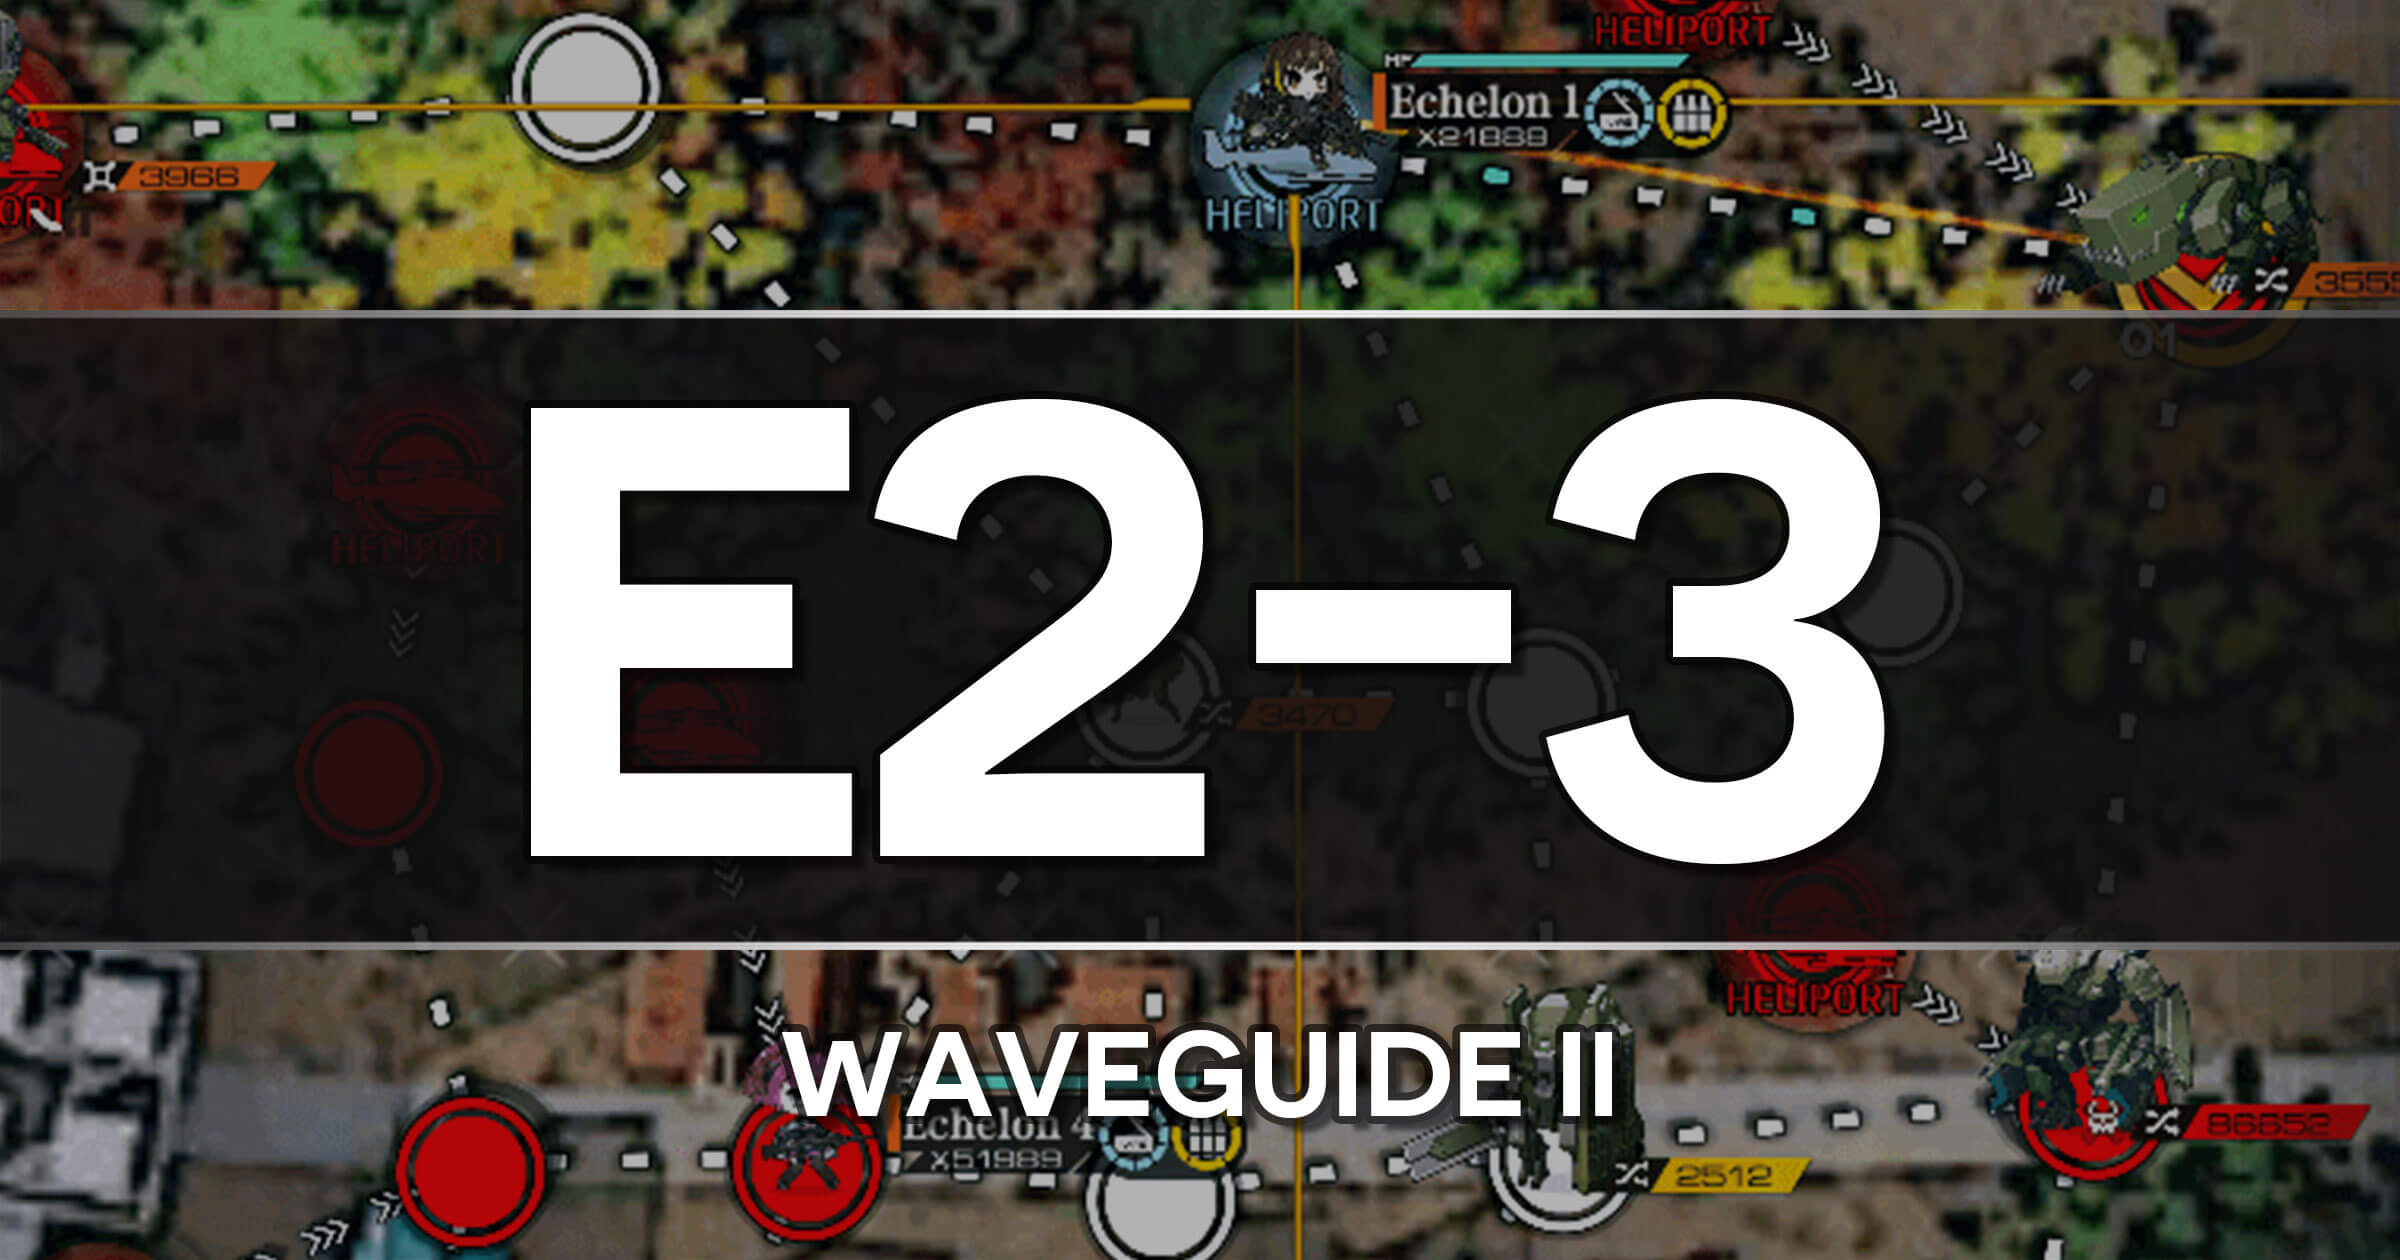 A guide to the Girls Frontline Polarized Light Event stage E2-3: Waveguide II